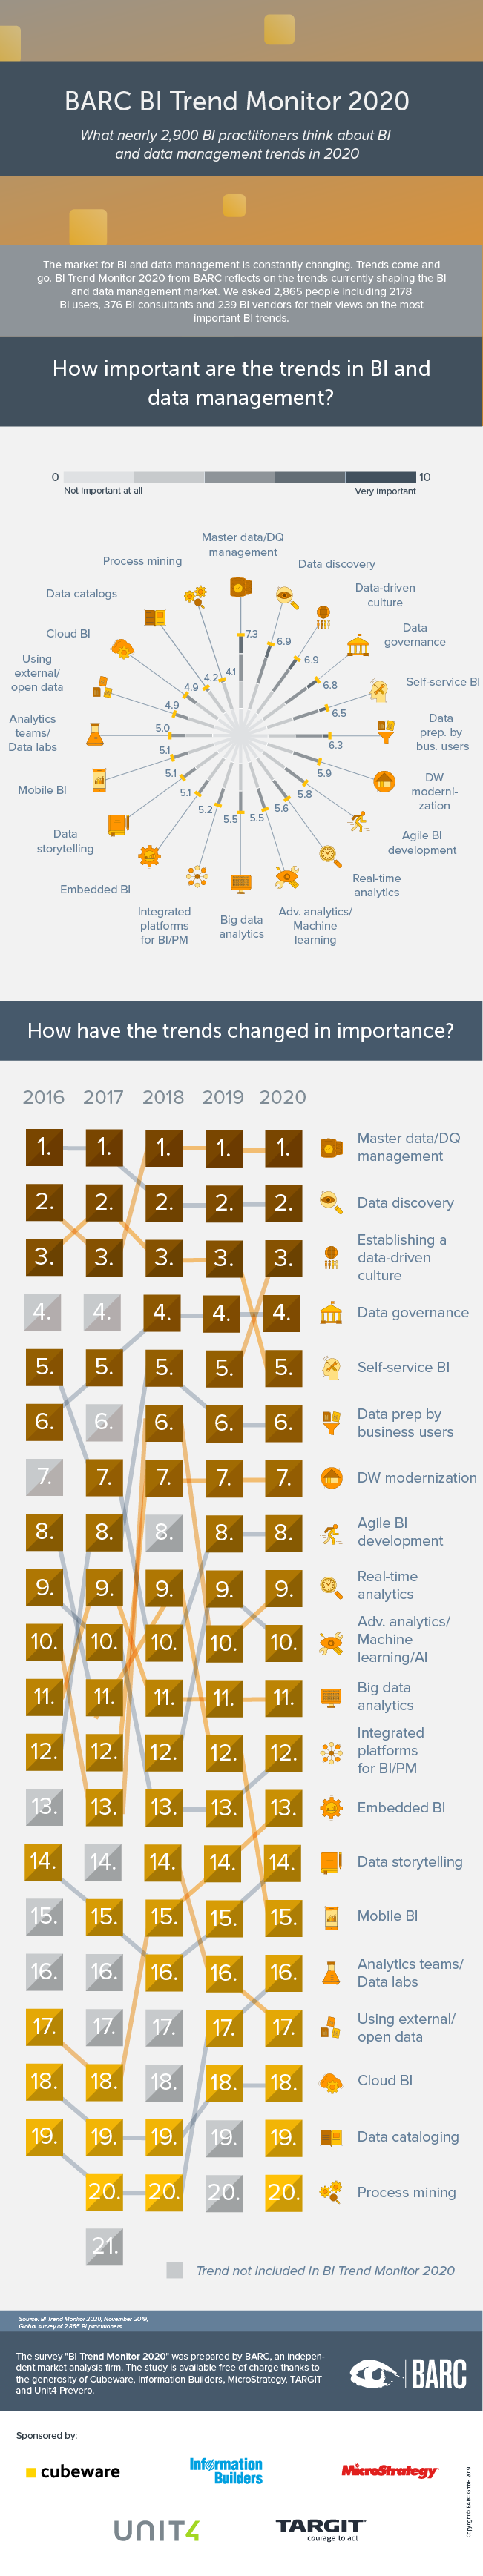 BI Trend Monitor 2020 infographic